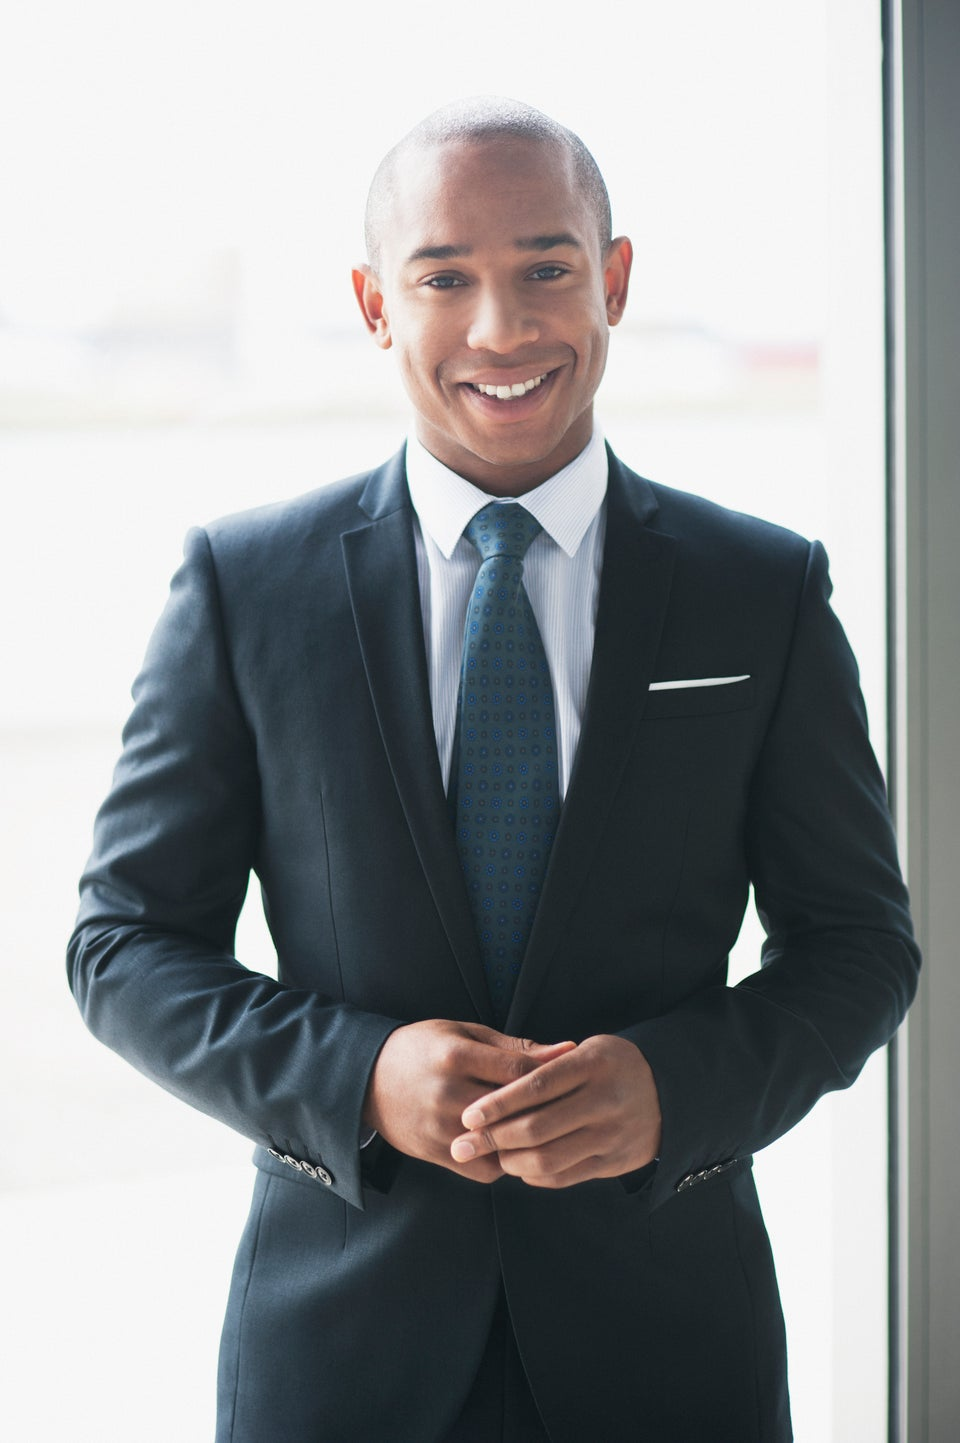 Here's What It's Like to Be a Black Man in Corporate America